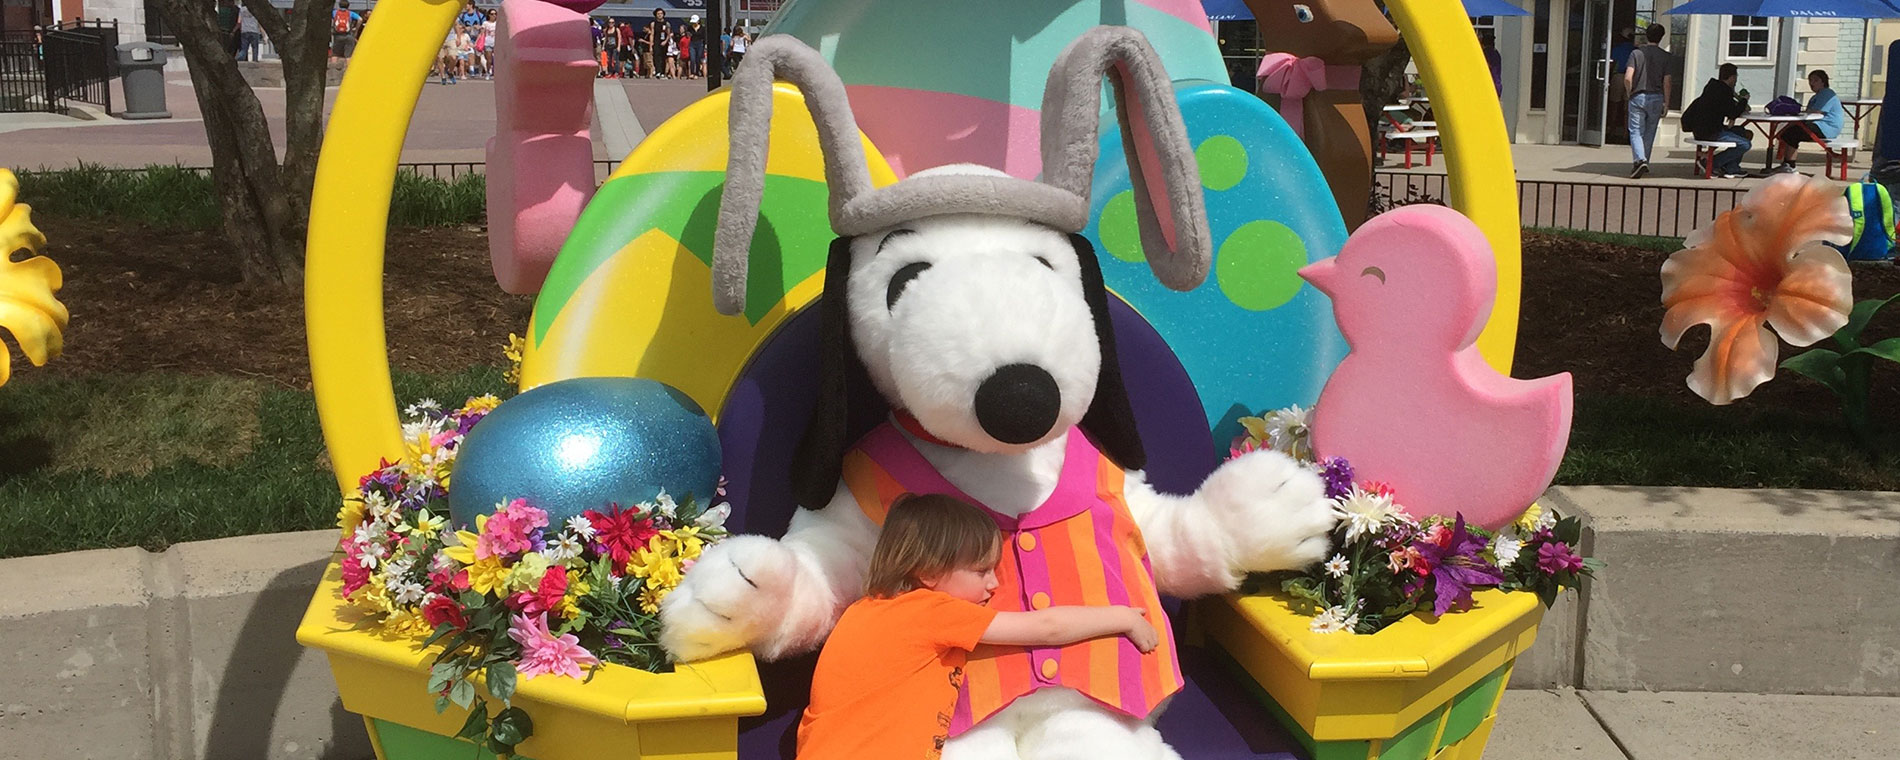 Snoopy's Scavenger Hunt at Easter Egg-stravaganza